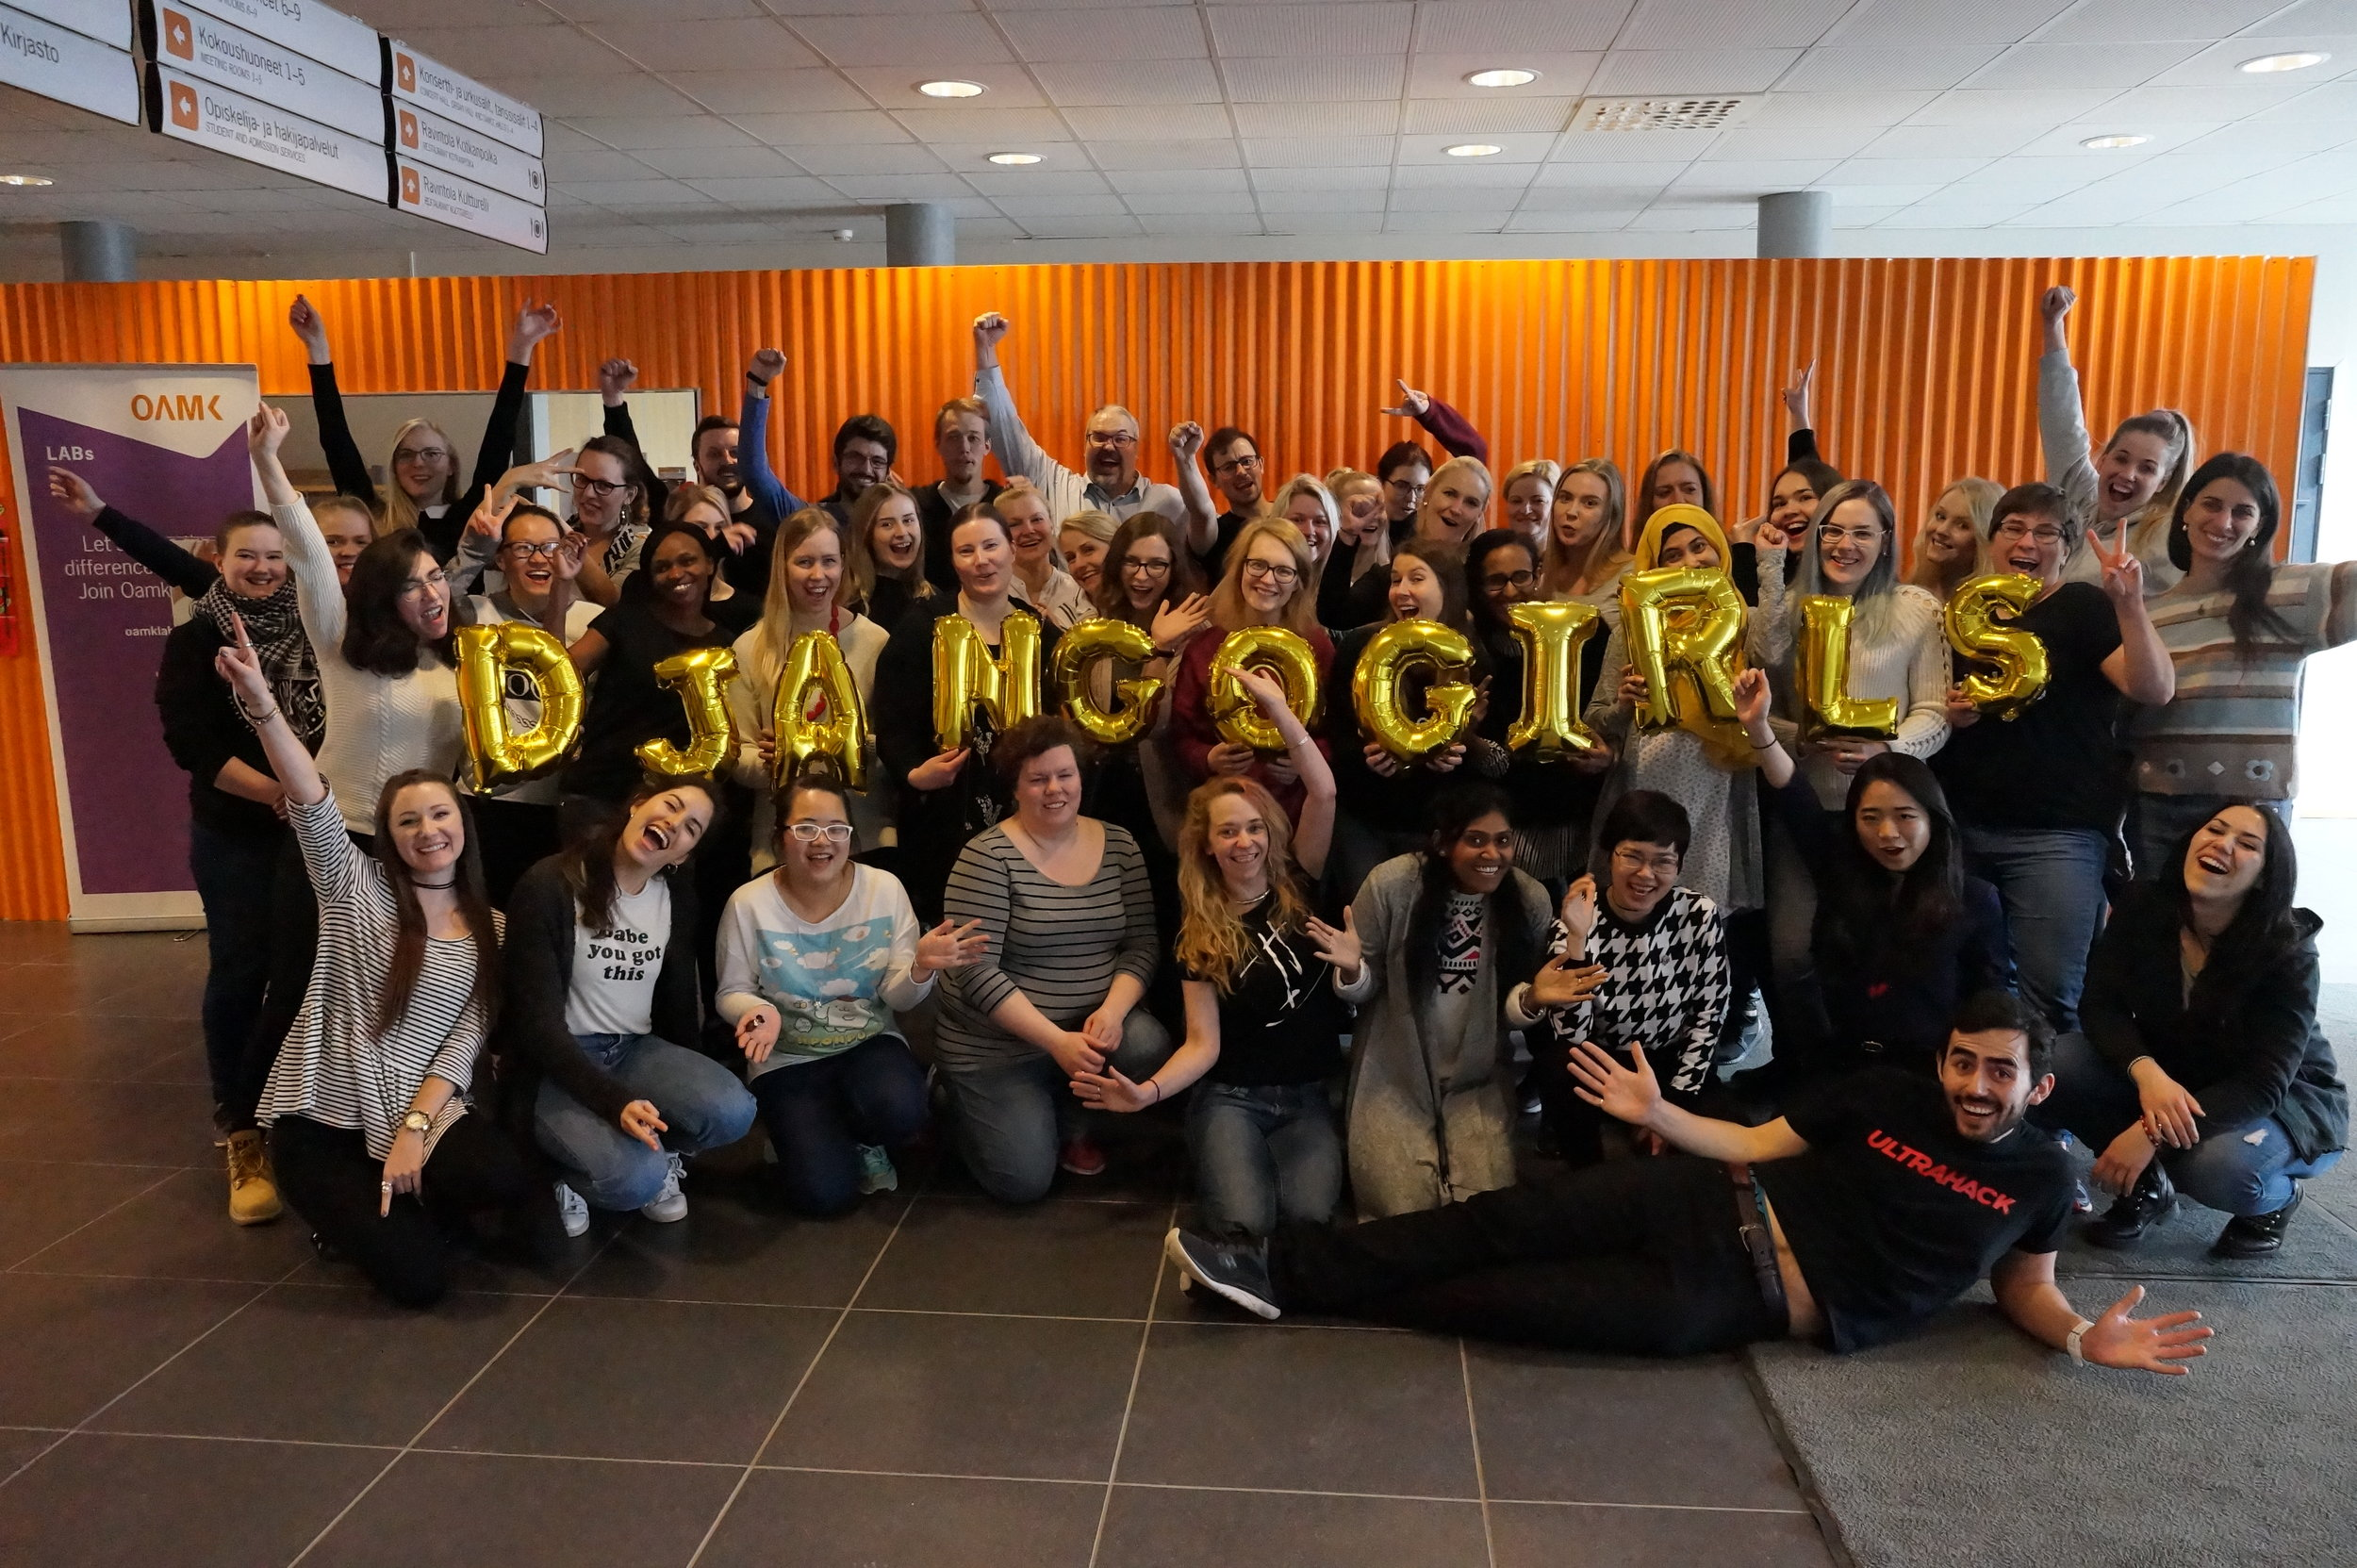 One of our most popular events is Django Girls, a two-day programming event for women.